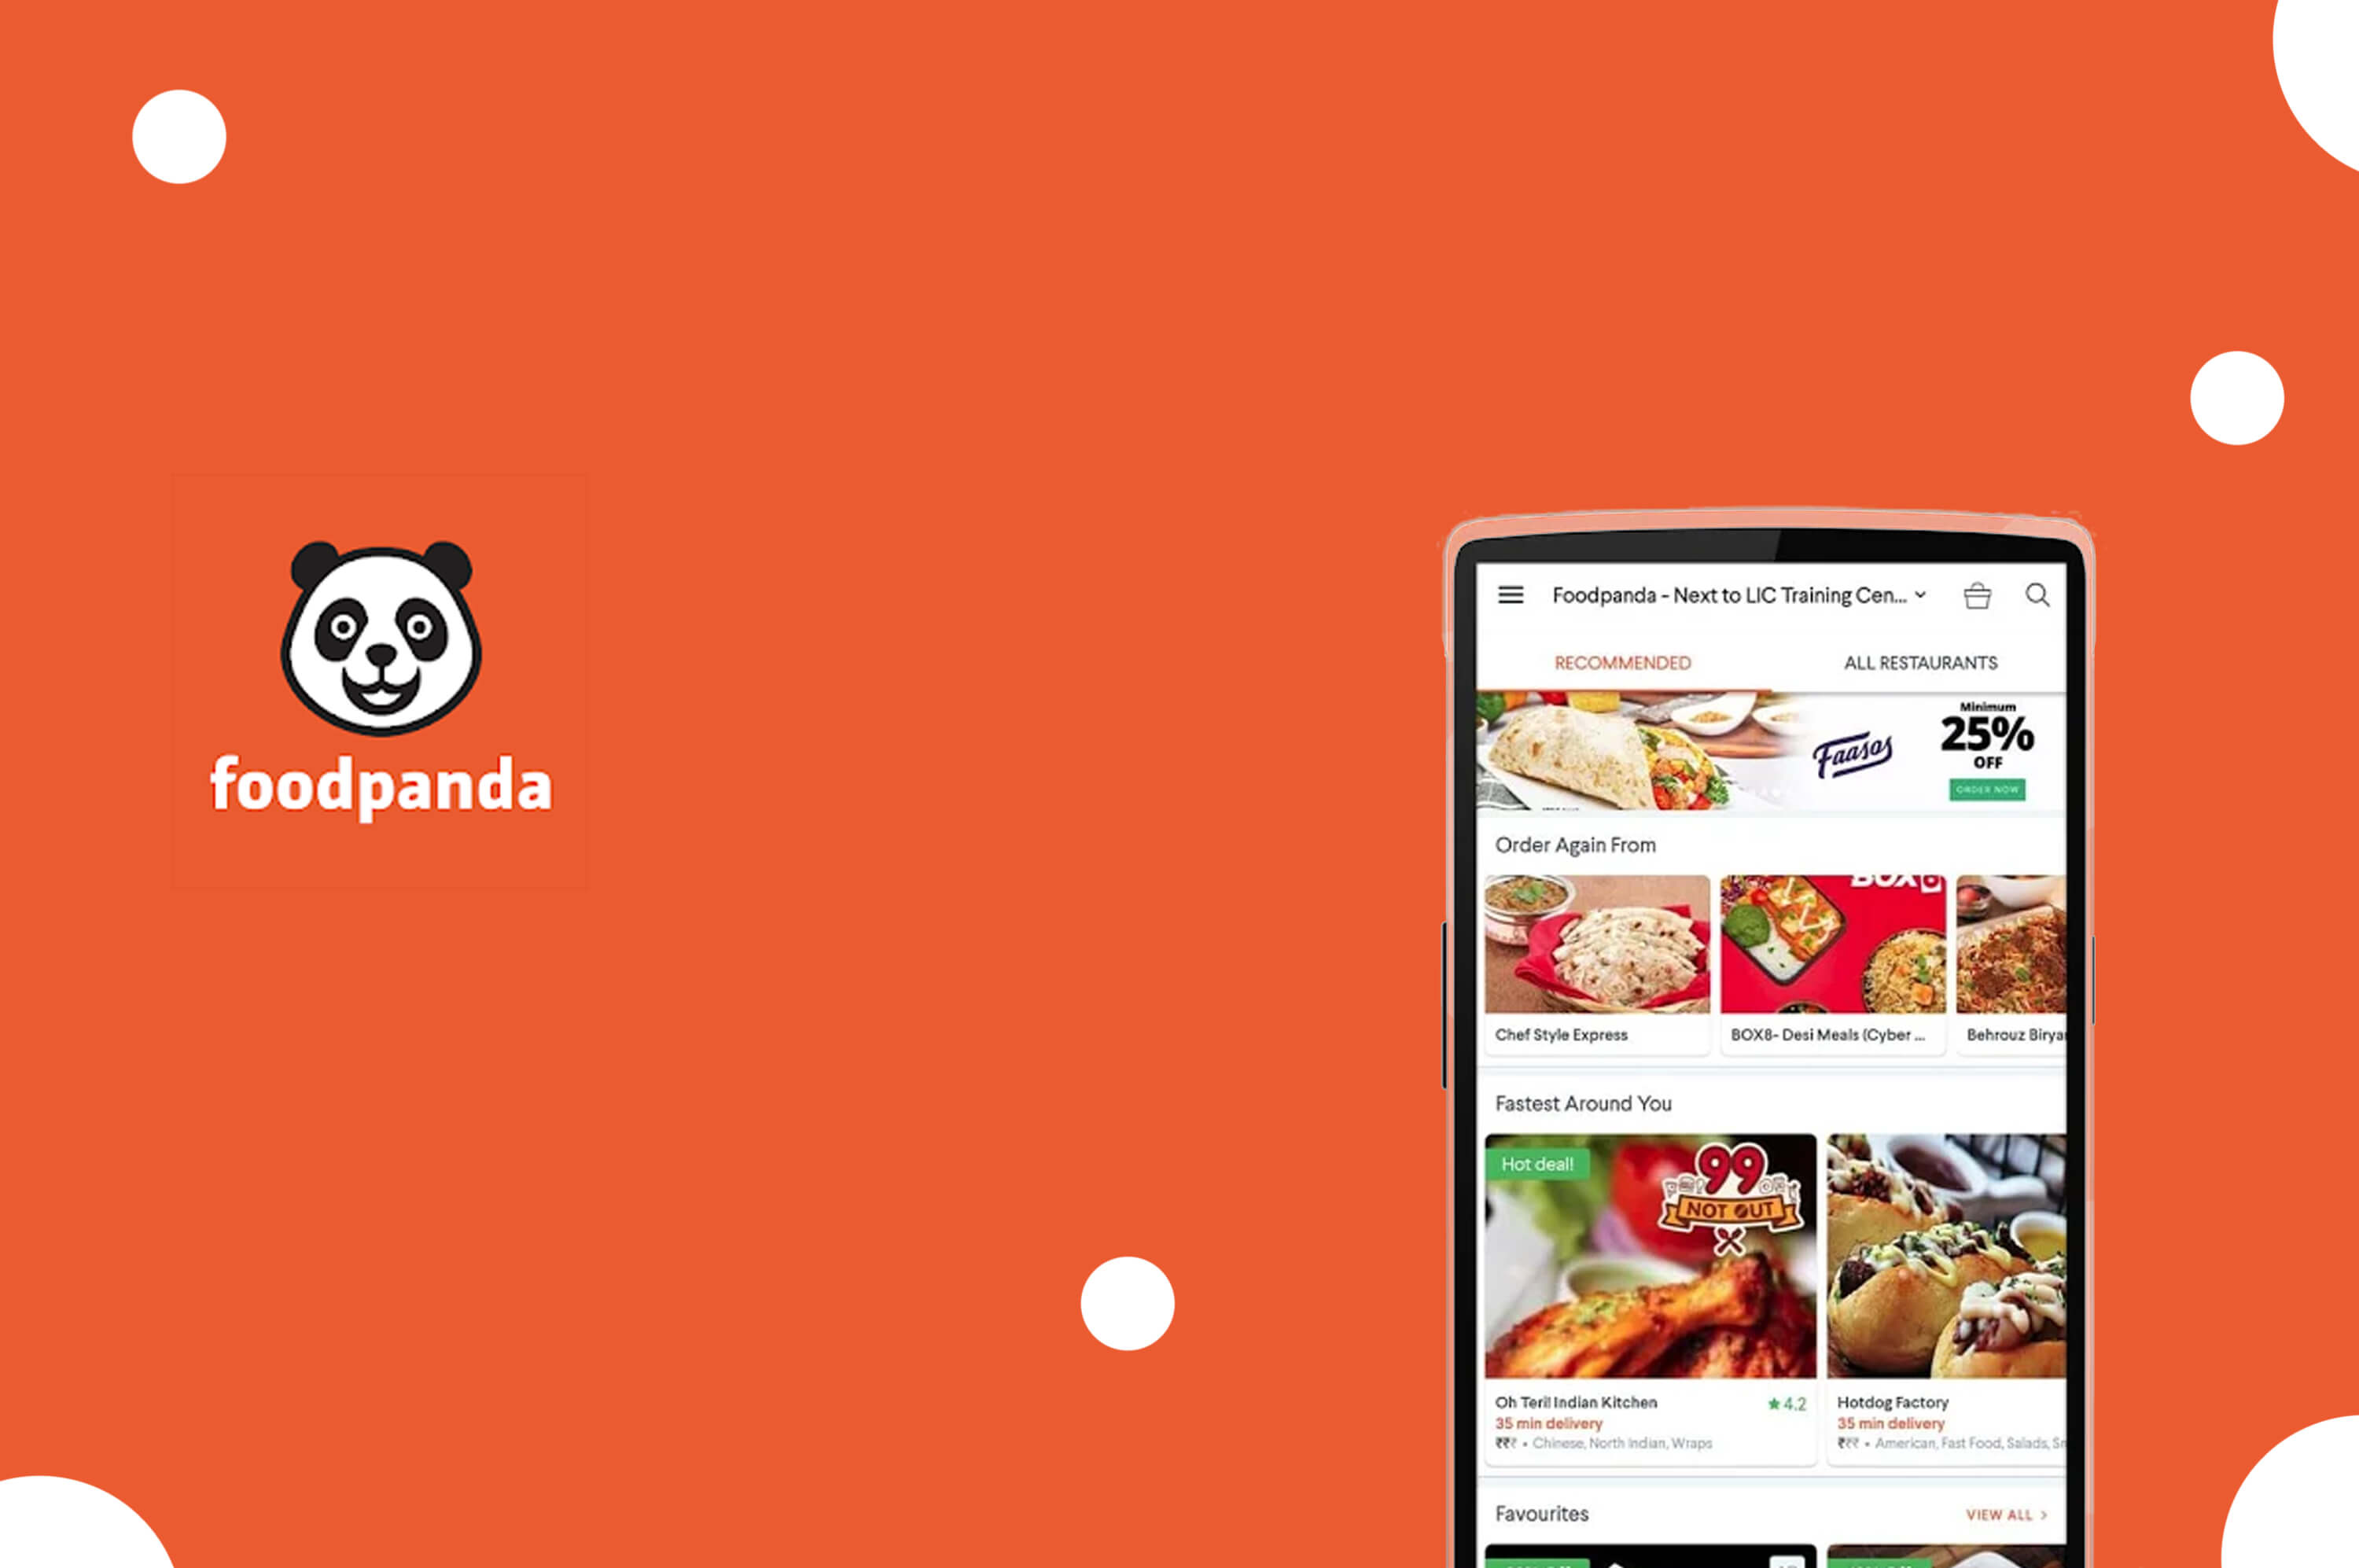 a smartphone with foodpanda app opened in its screen